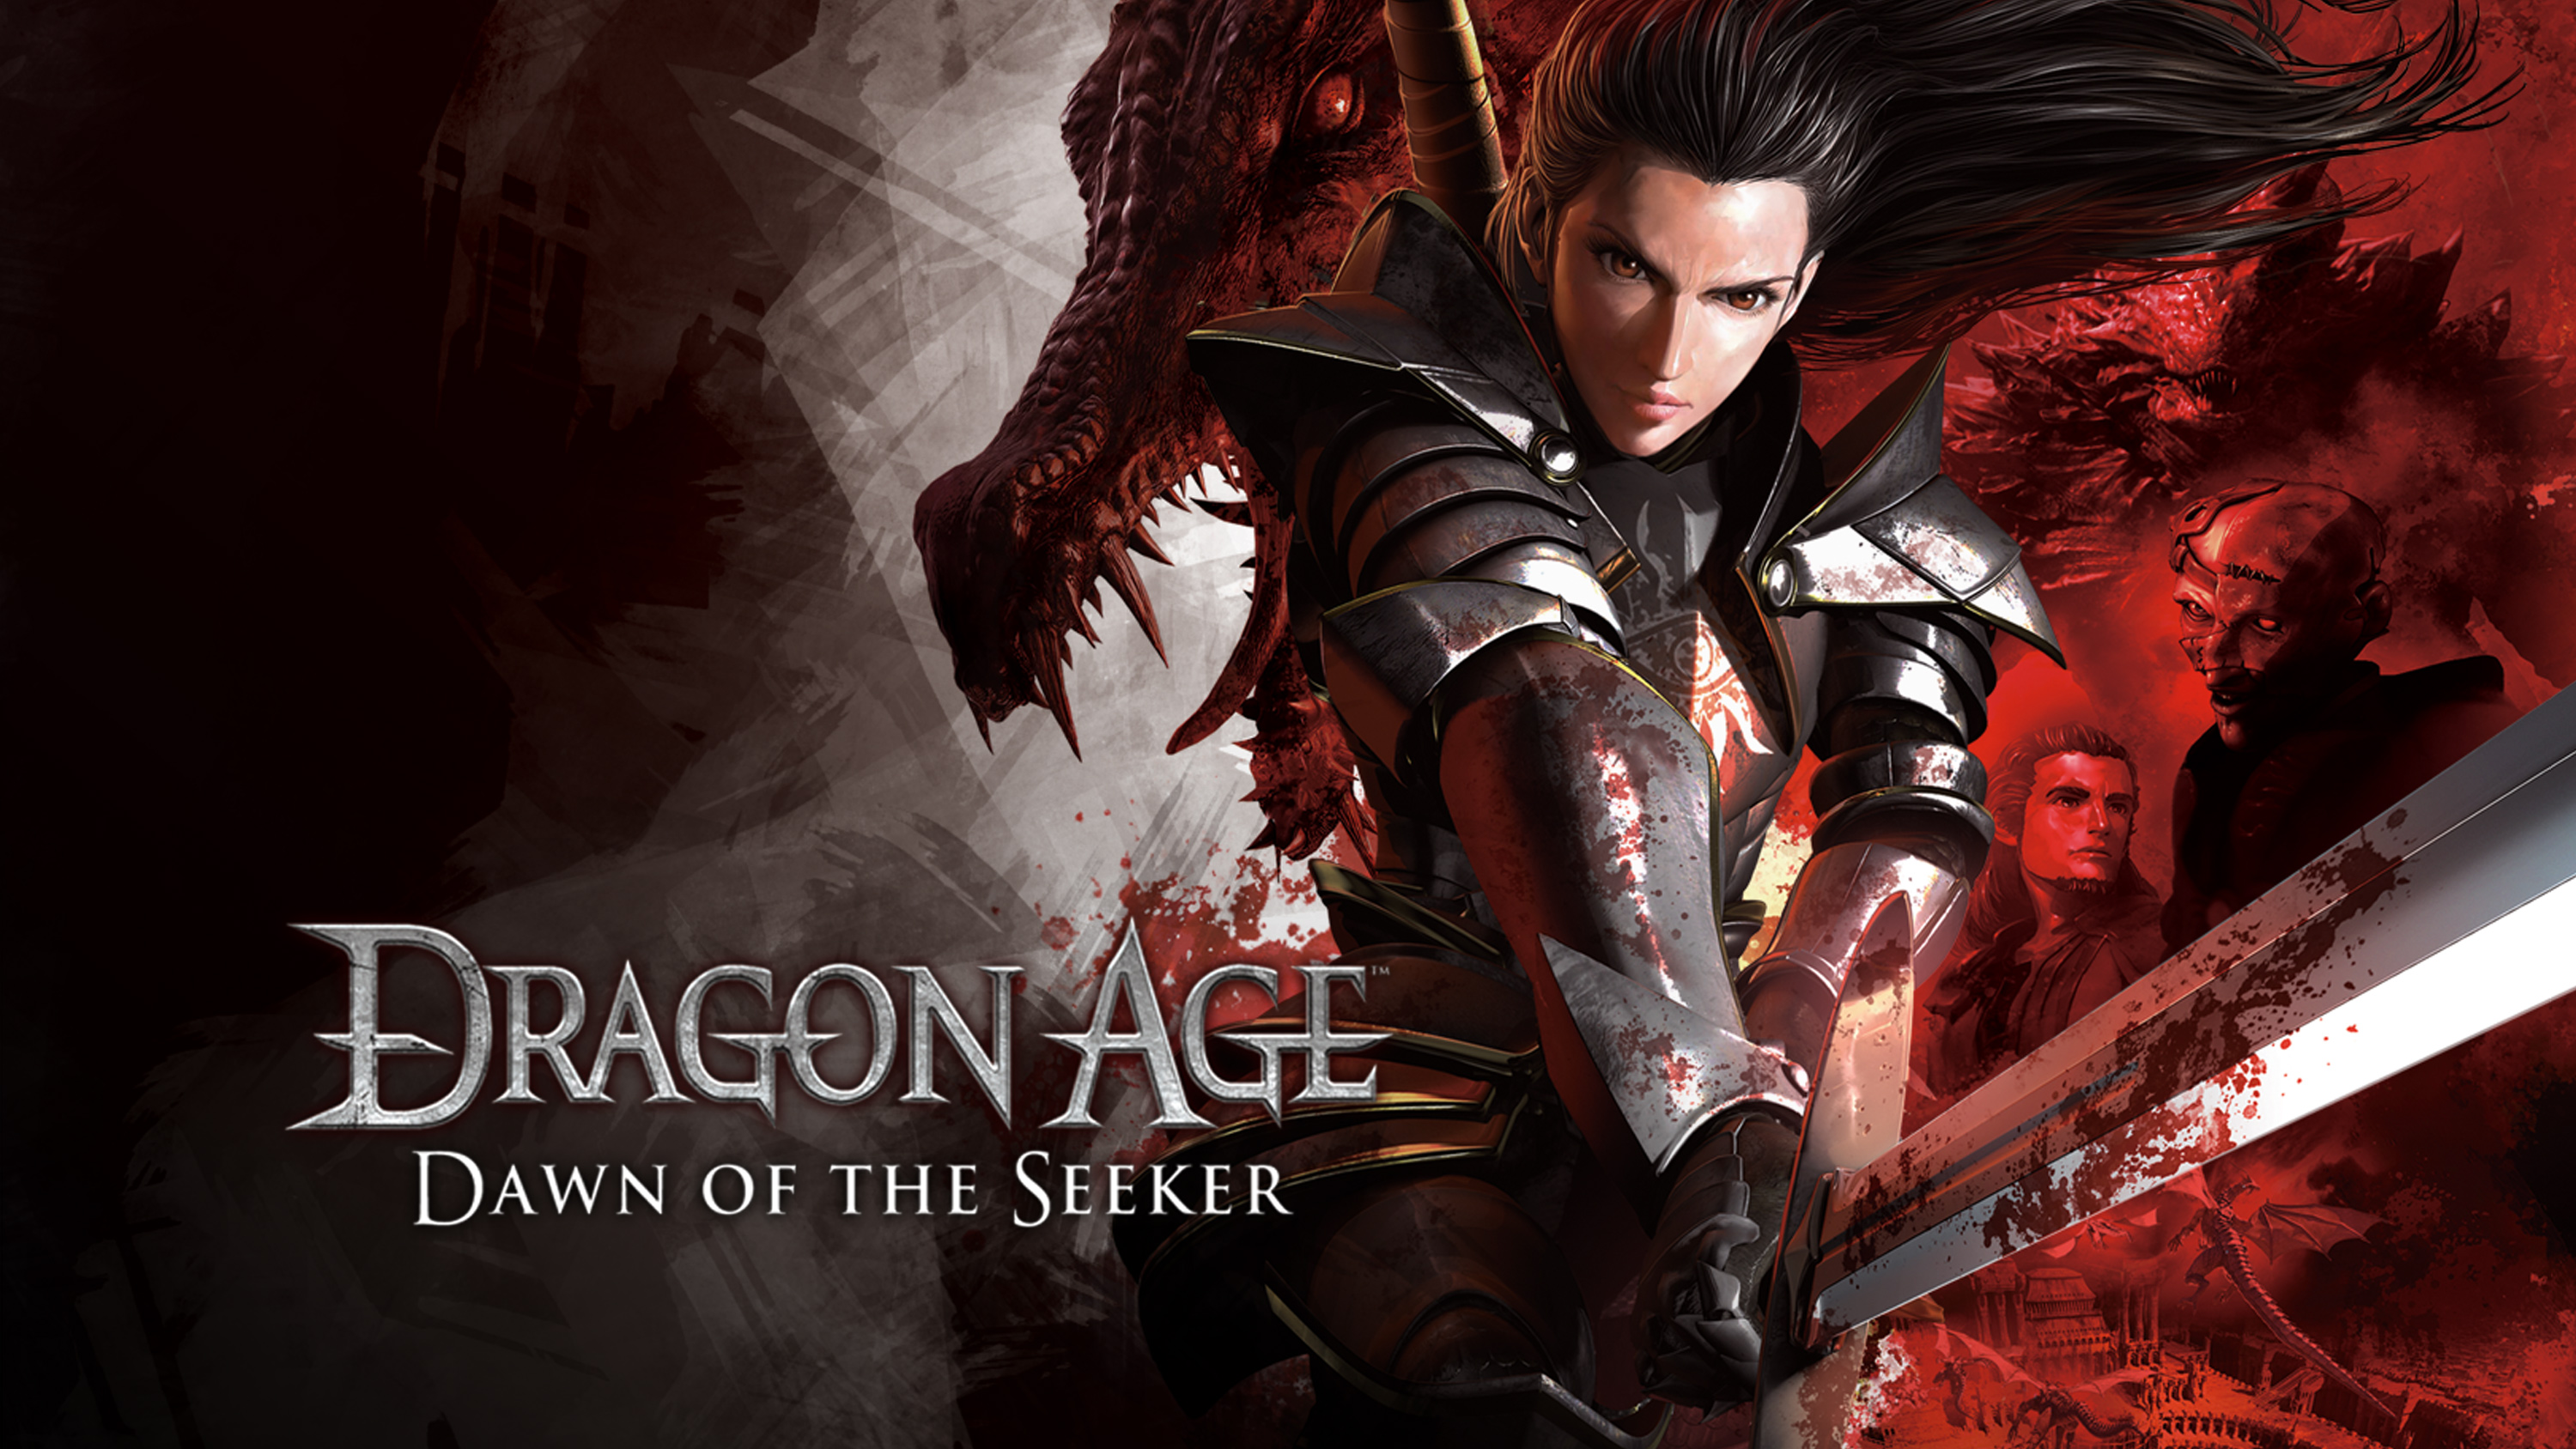 Watch Dragon Age Dawn Of The Seeker Movie Sub Dub Action Adventure Fantasy Anime Funimation